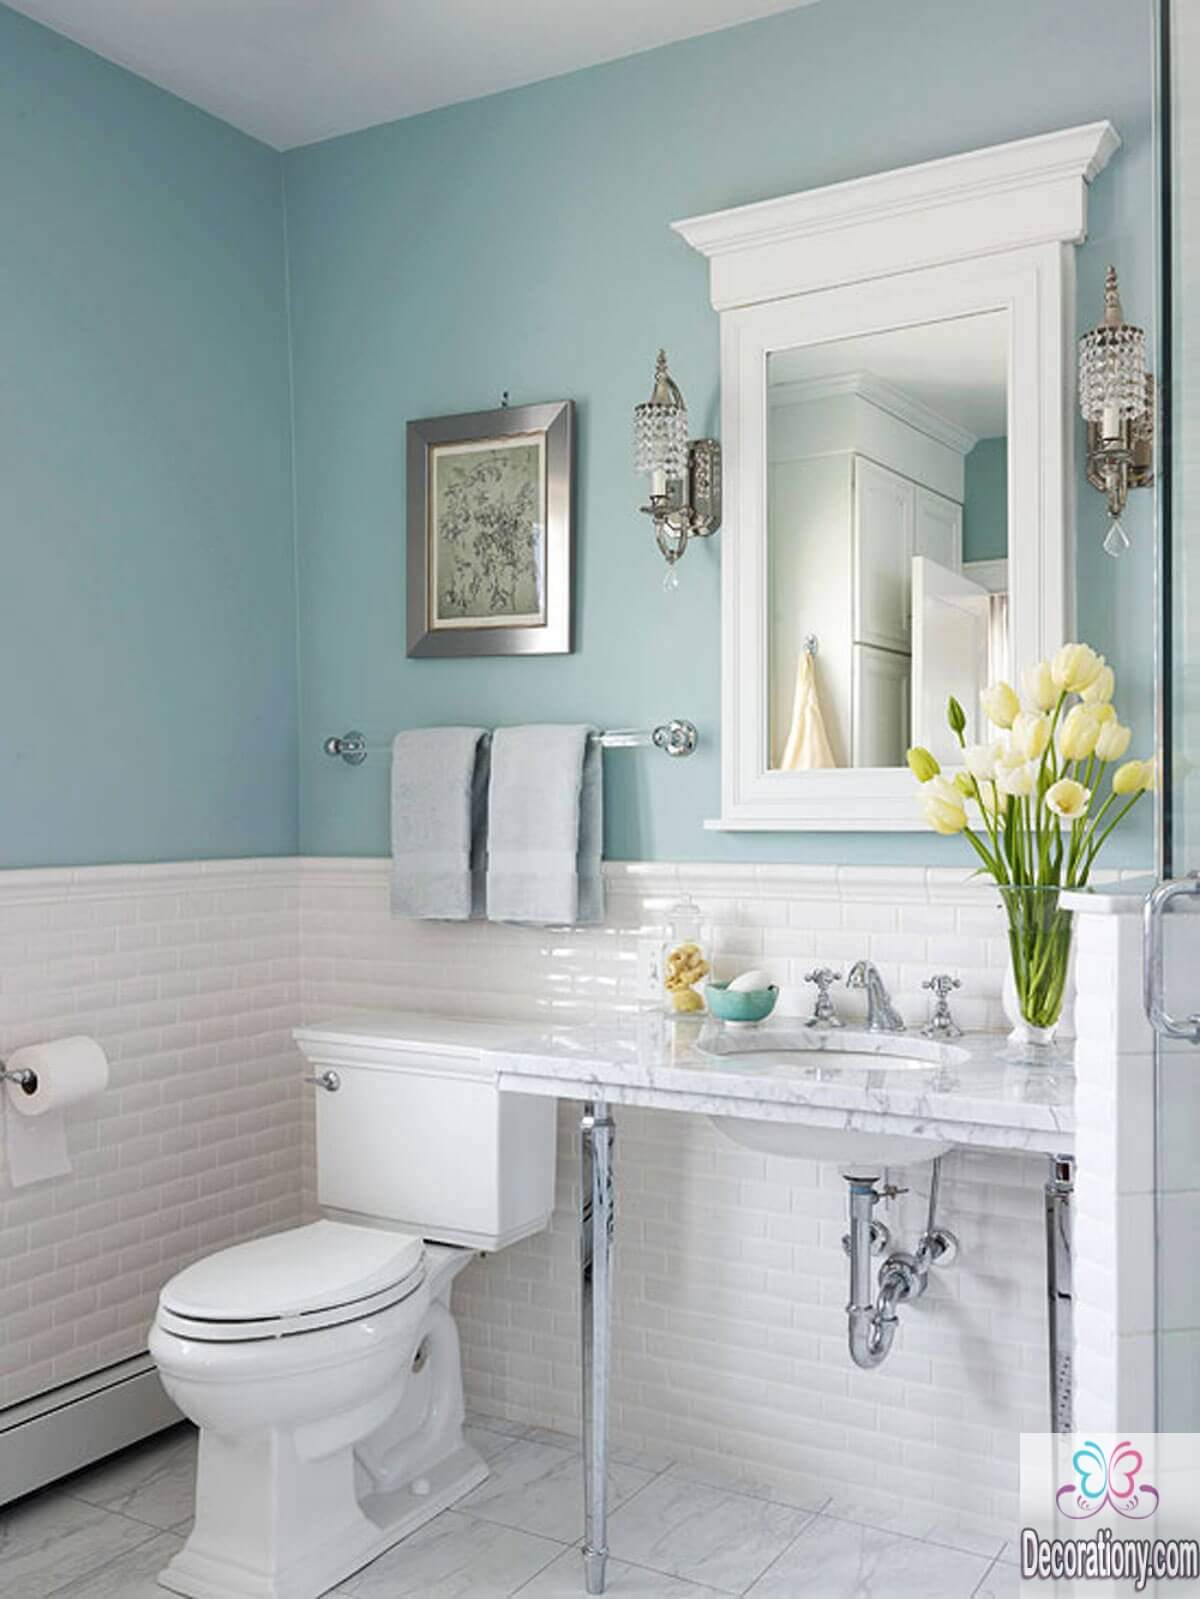 10 affordable colors for small bathrooms decoration y for Small bathroom remodel designs